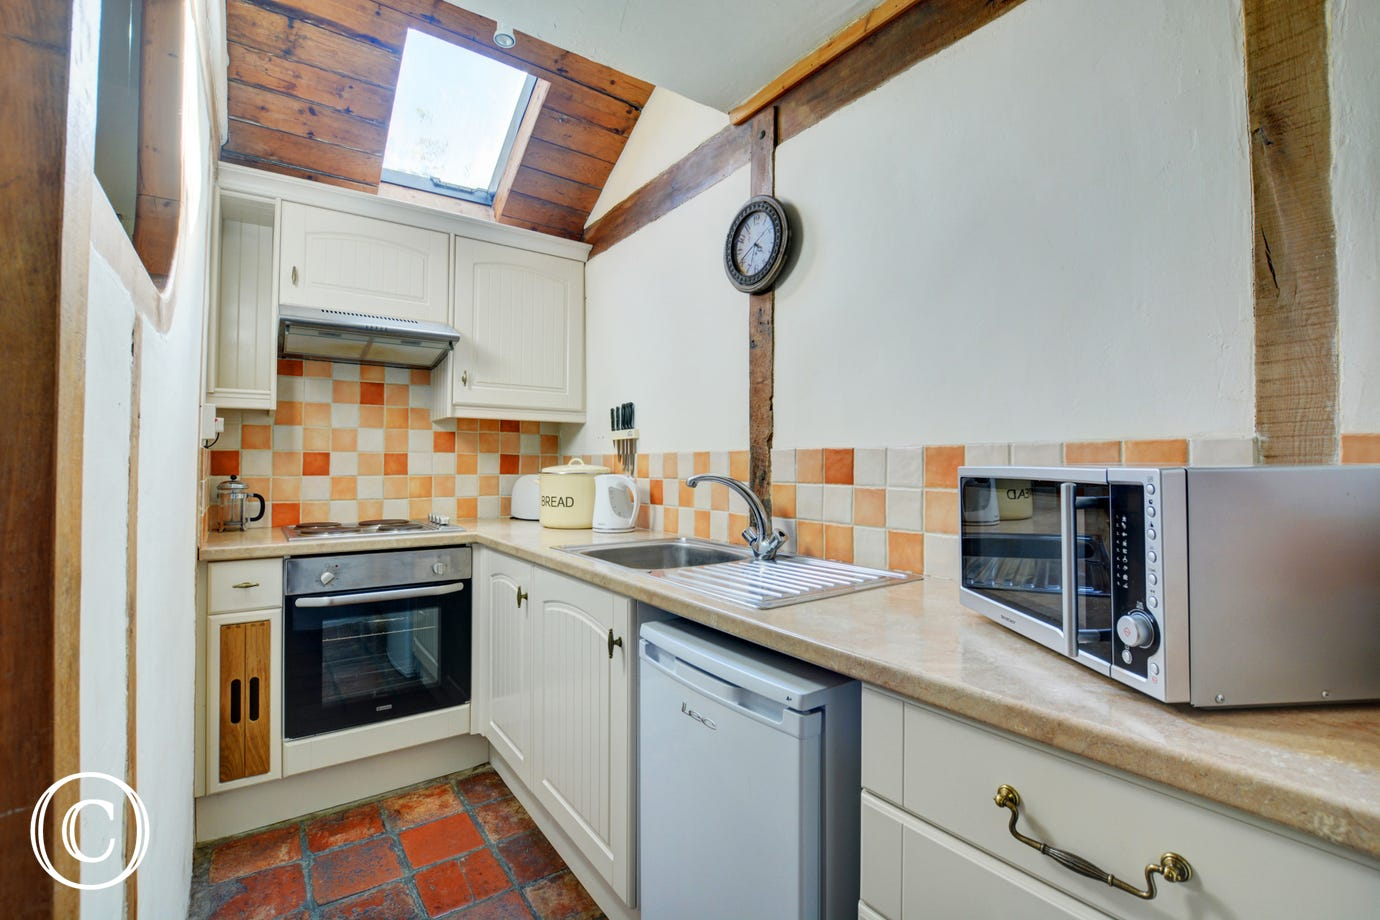 Compact and well presented kitchen with velux window, shades of cream beige and terracotta floor tiles.